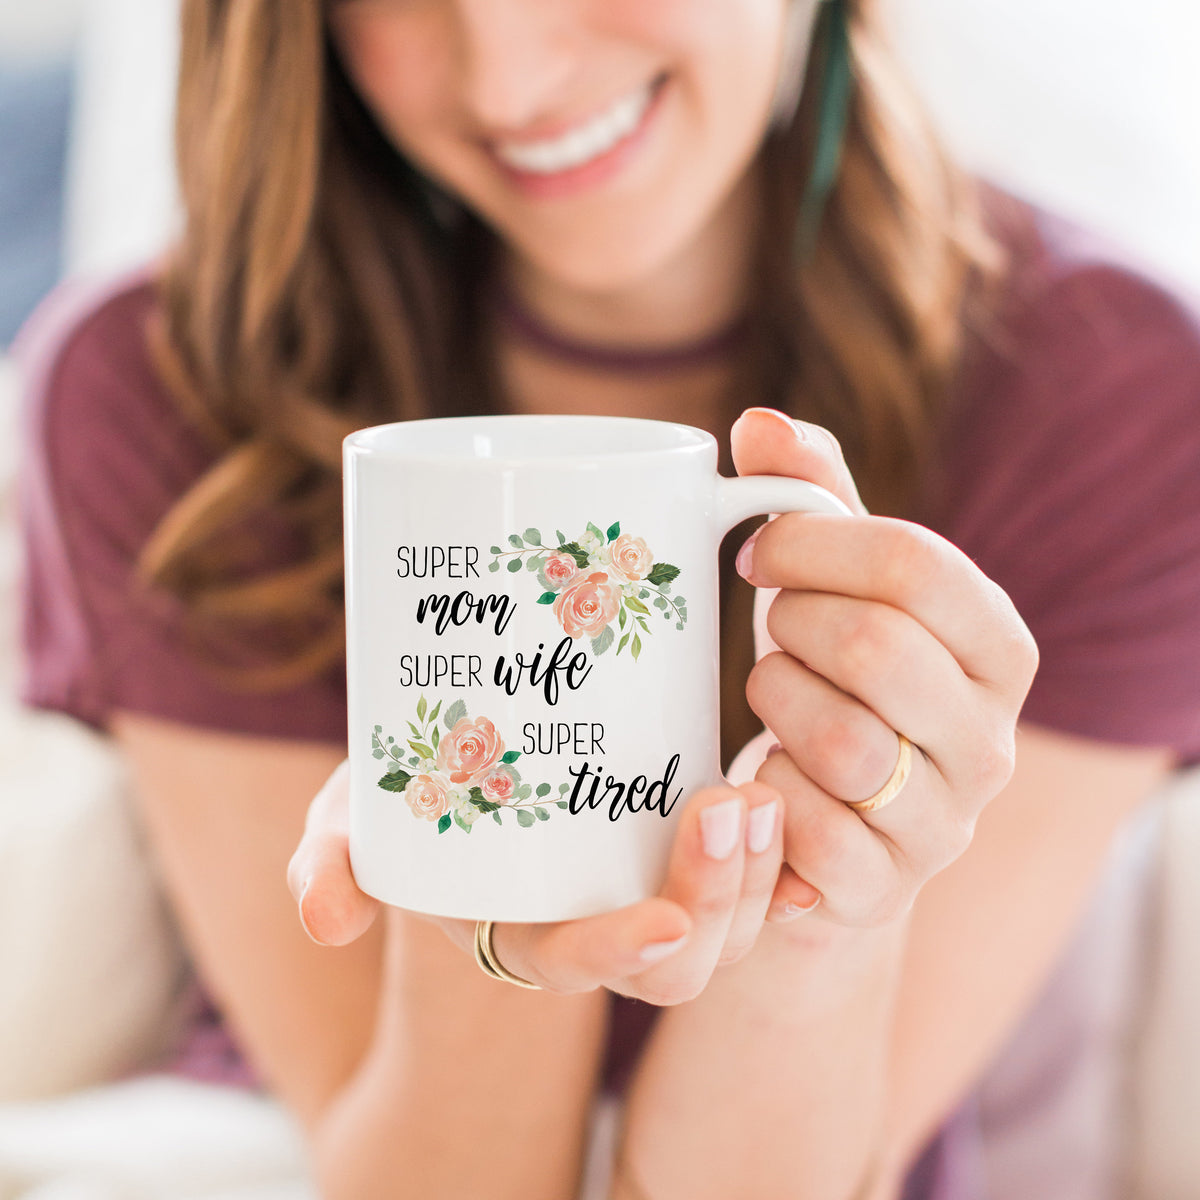 Super Mom Super Wife Super Tired Mug